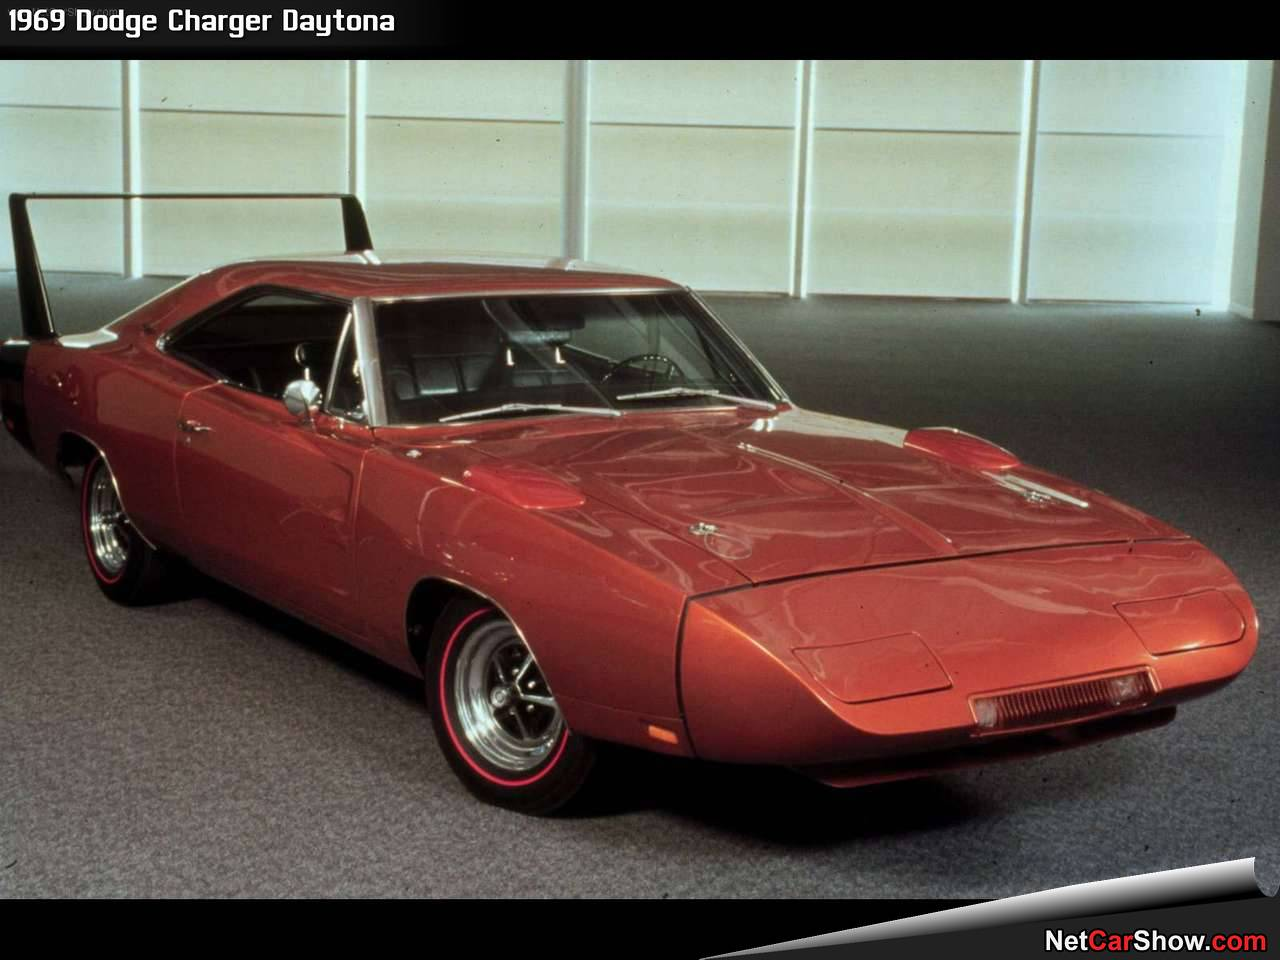 1969 dodge charger daytona maroon 1969 dodge charger daytona 1969. Cars Review. Best American Auto & Cars Review